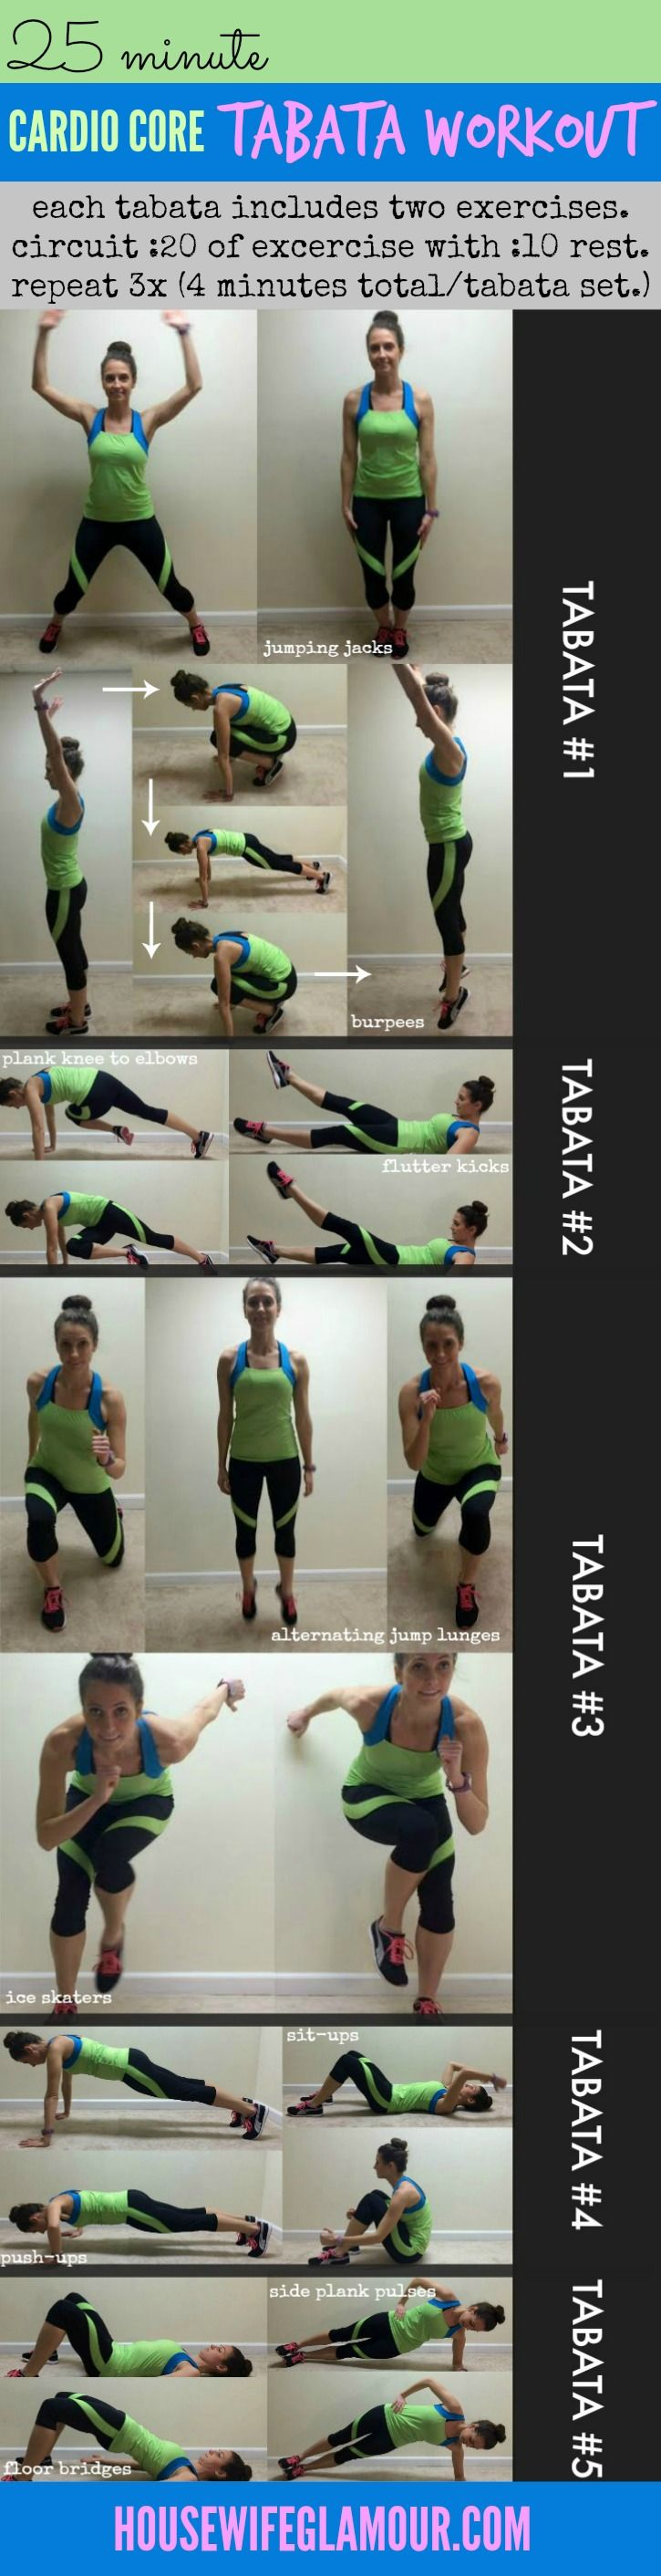 Kick off the new year with this 25 minute high intensity bodyweight workout you can complete at home! #FitFluential